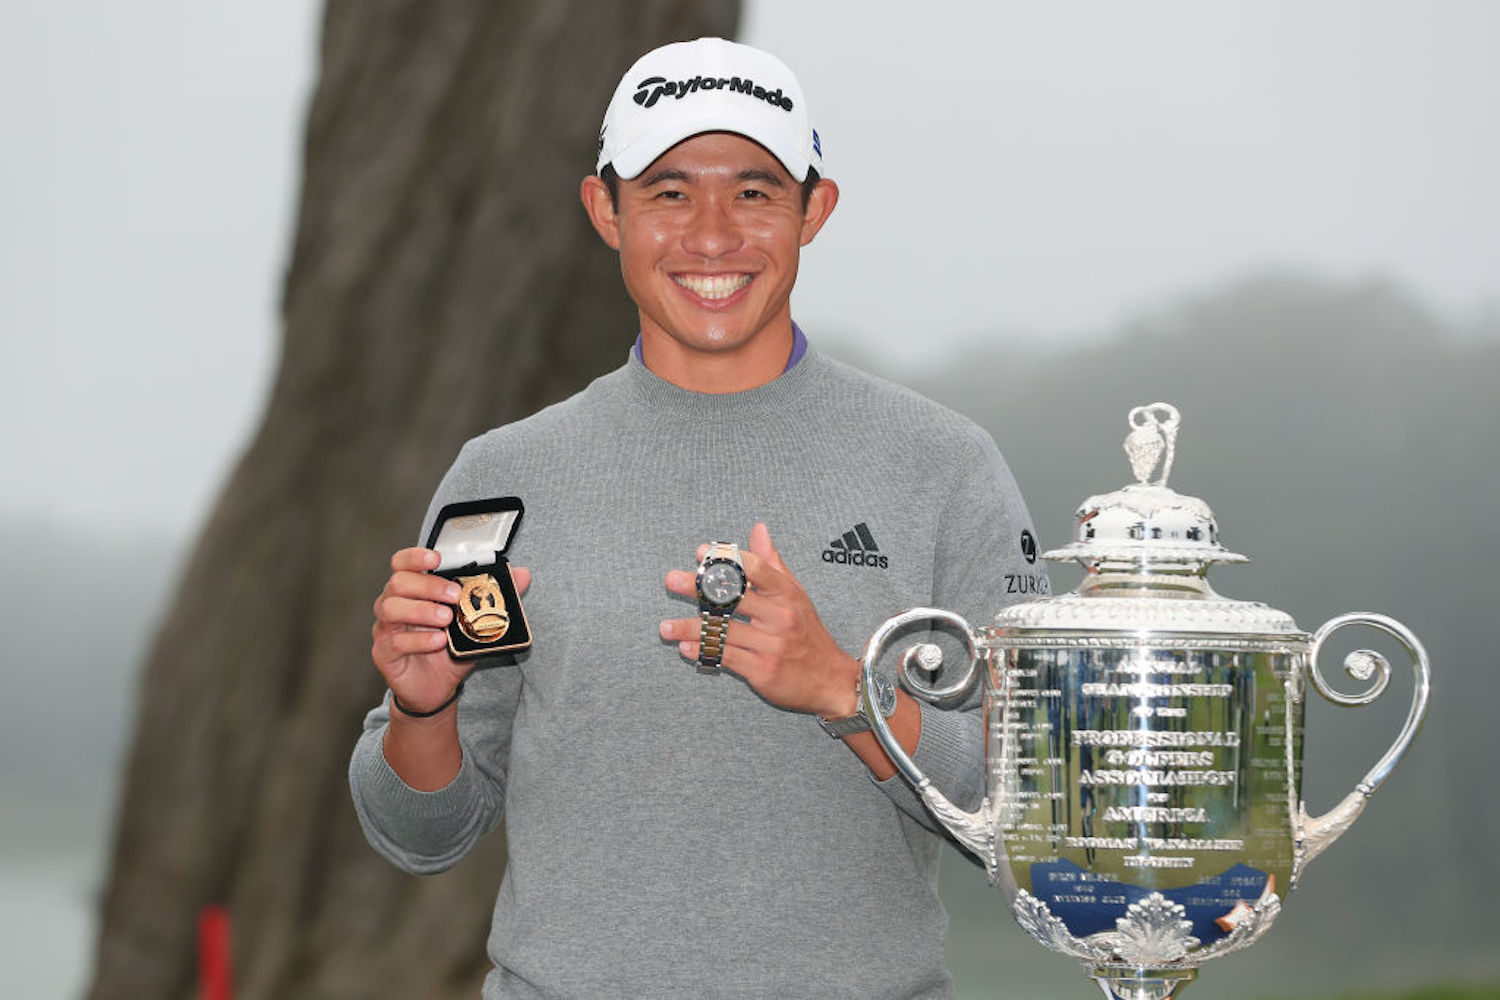 Collin Morikawa earned $1.98 million for his win at the 2020 PGA Championship, but he won't even see more than $990,000 of it.